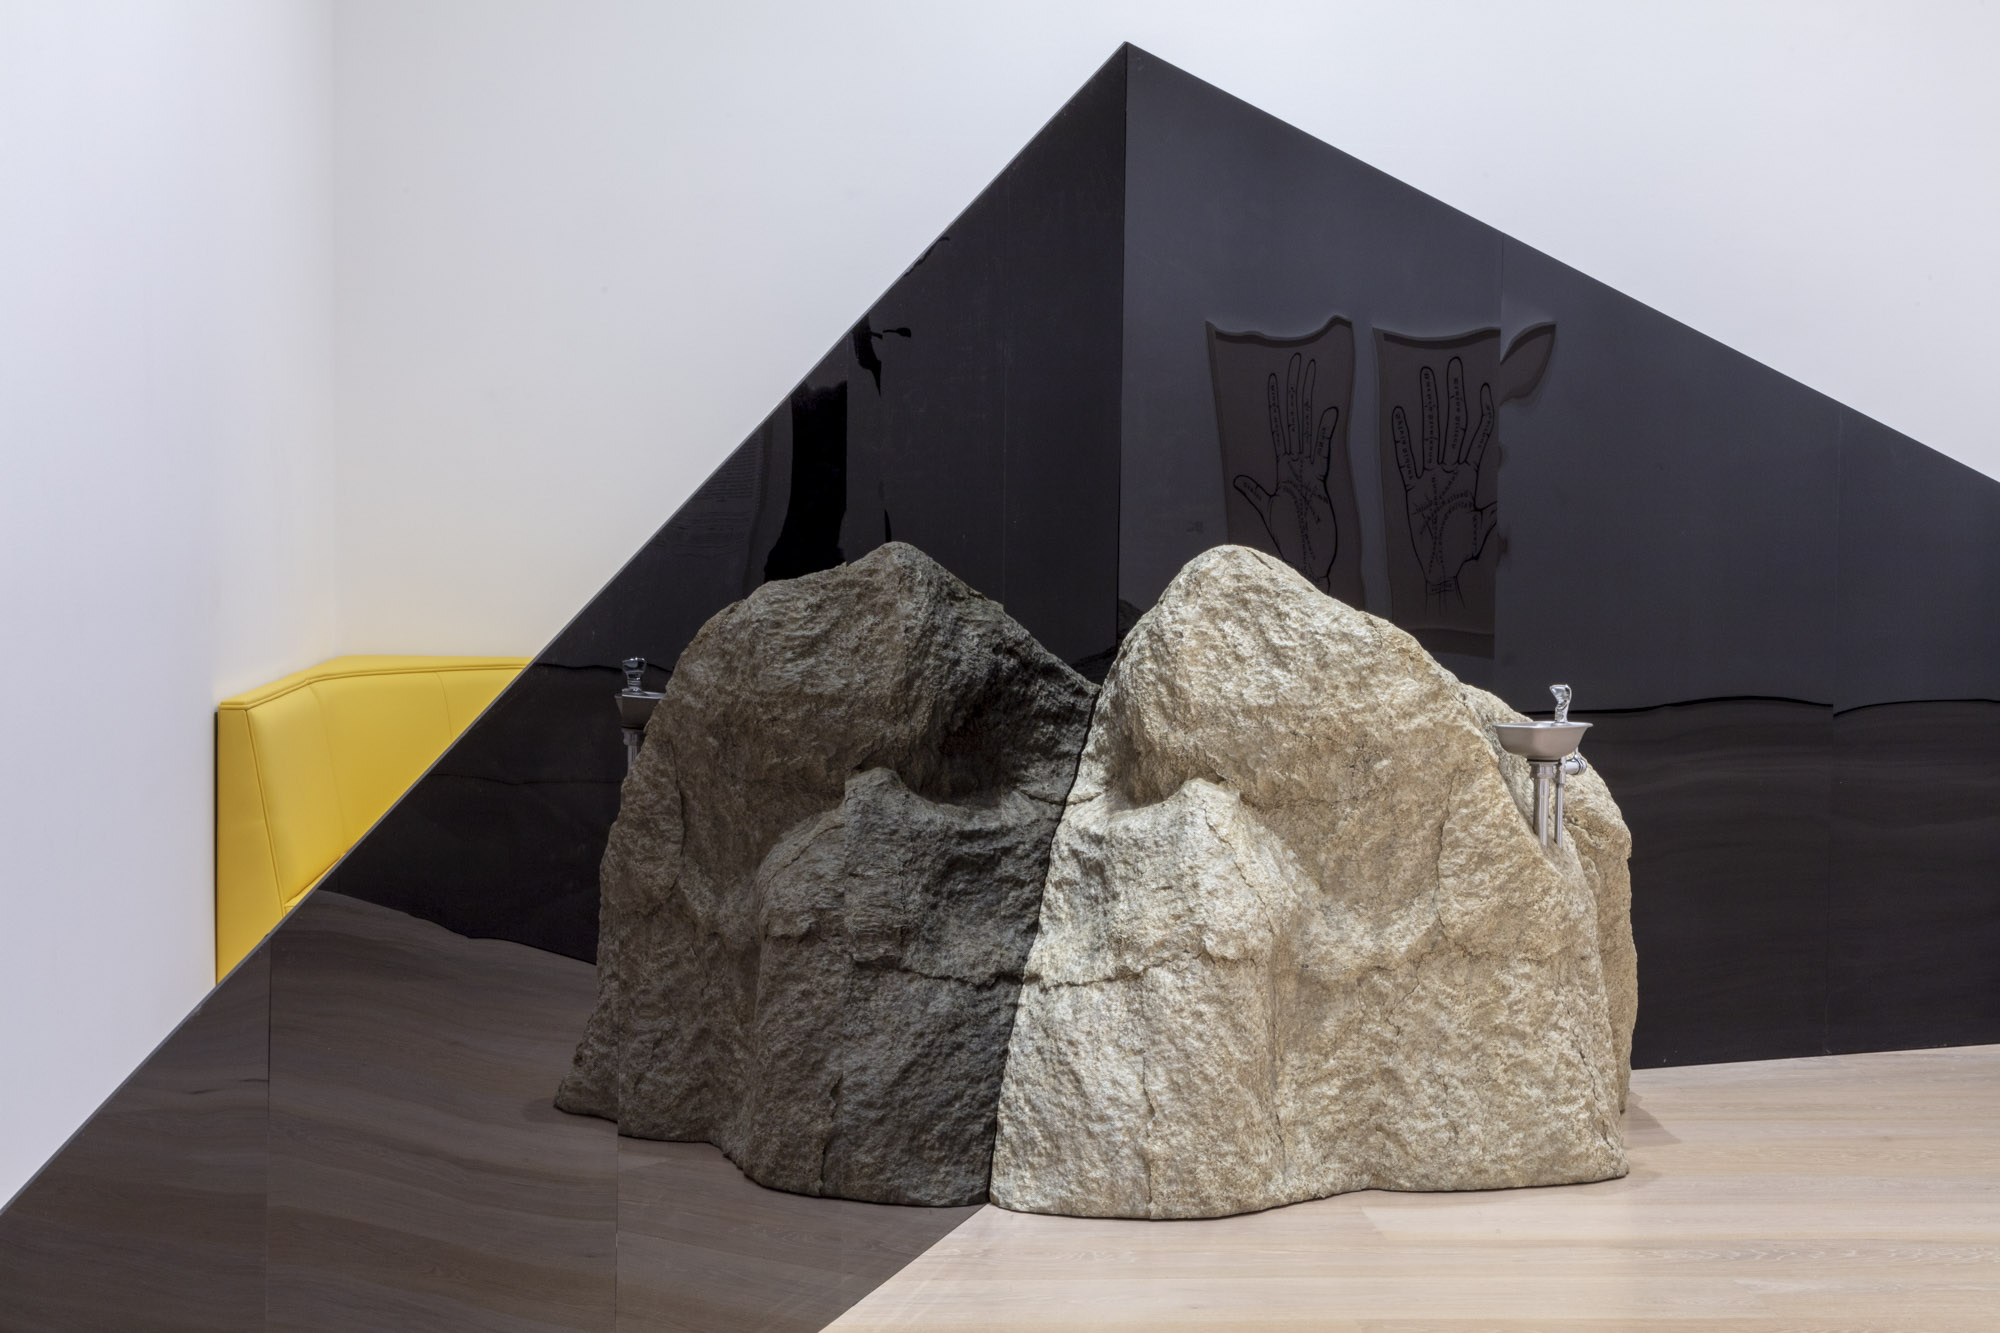 """An installation view of Patrick Jackson's work at """"Made in L.A. 2020: a version."""" at Hammer Museum, Los Angeles. 